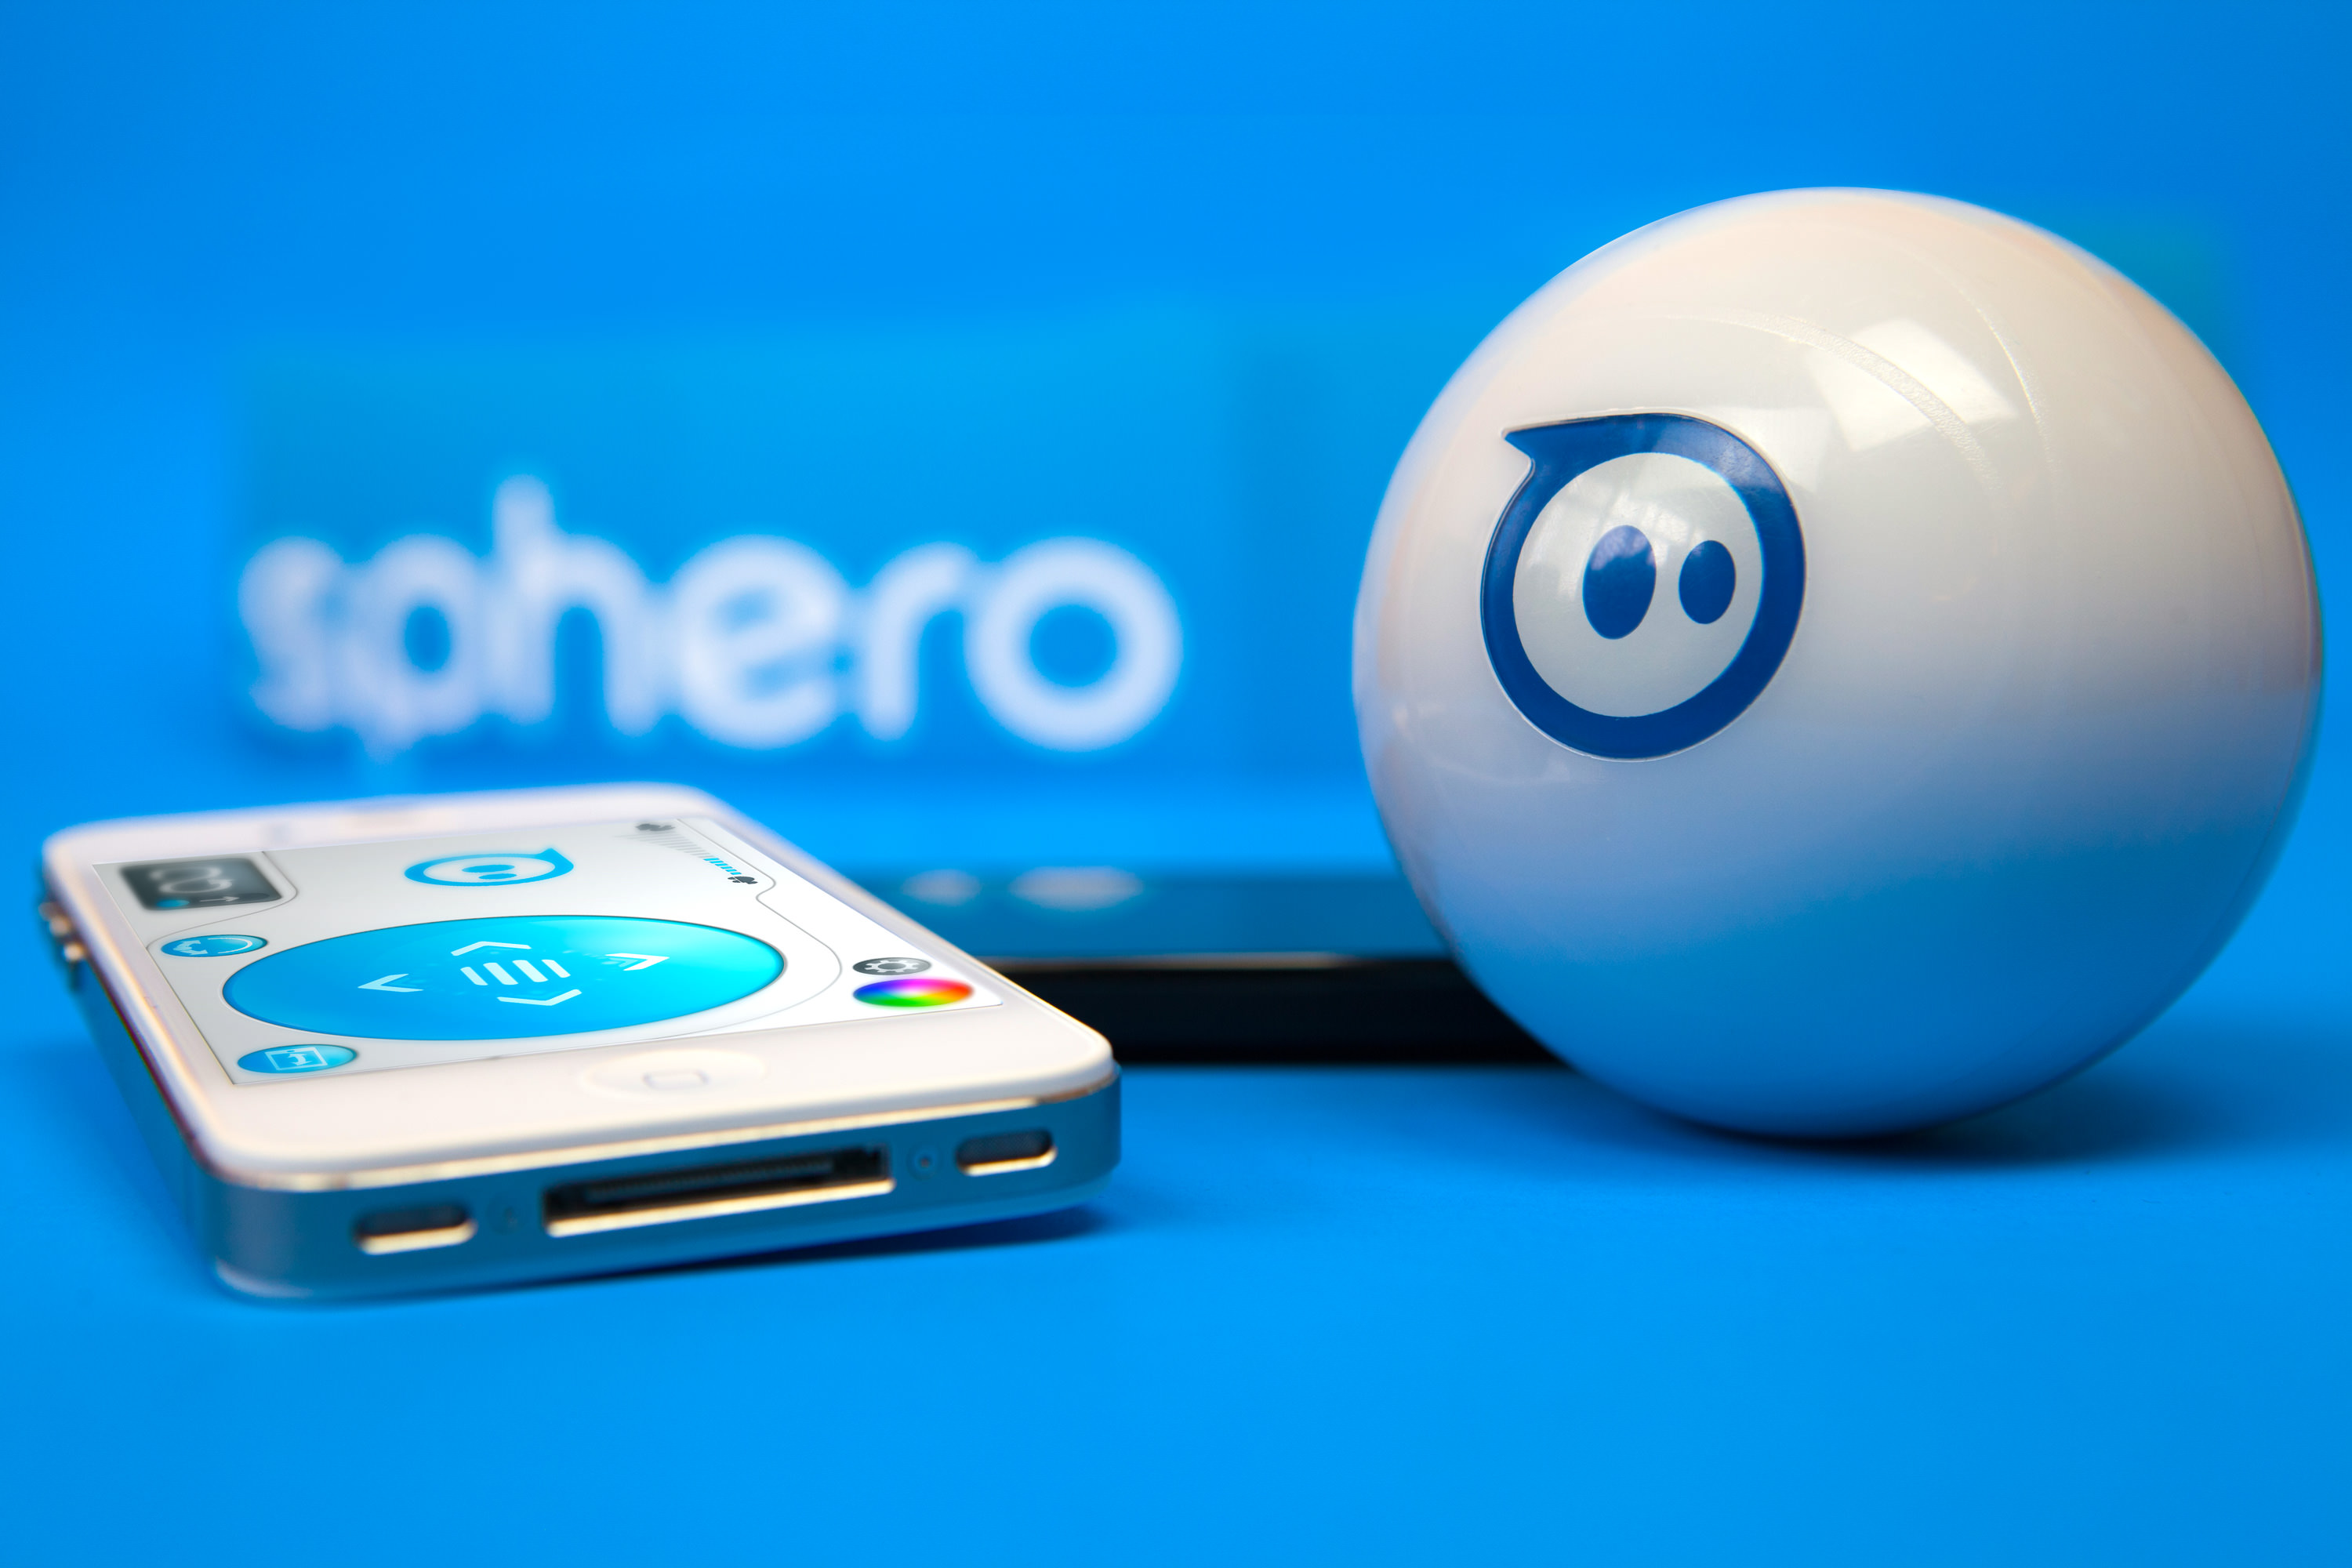 HERO-option-1-Sphero-with-phones-blue